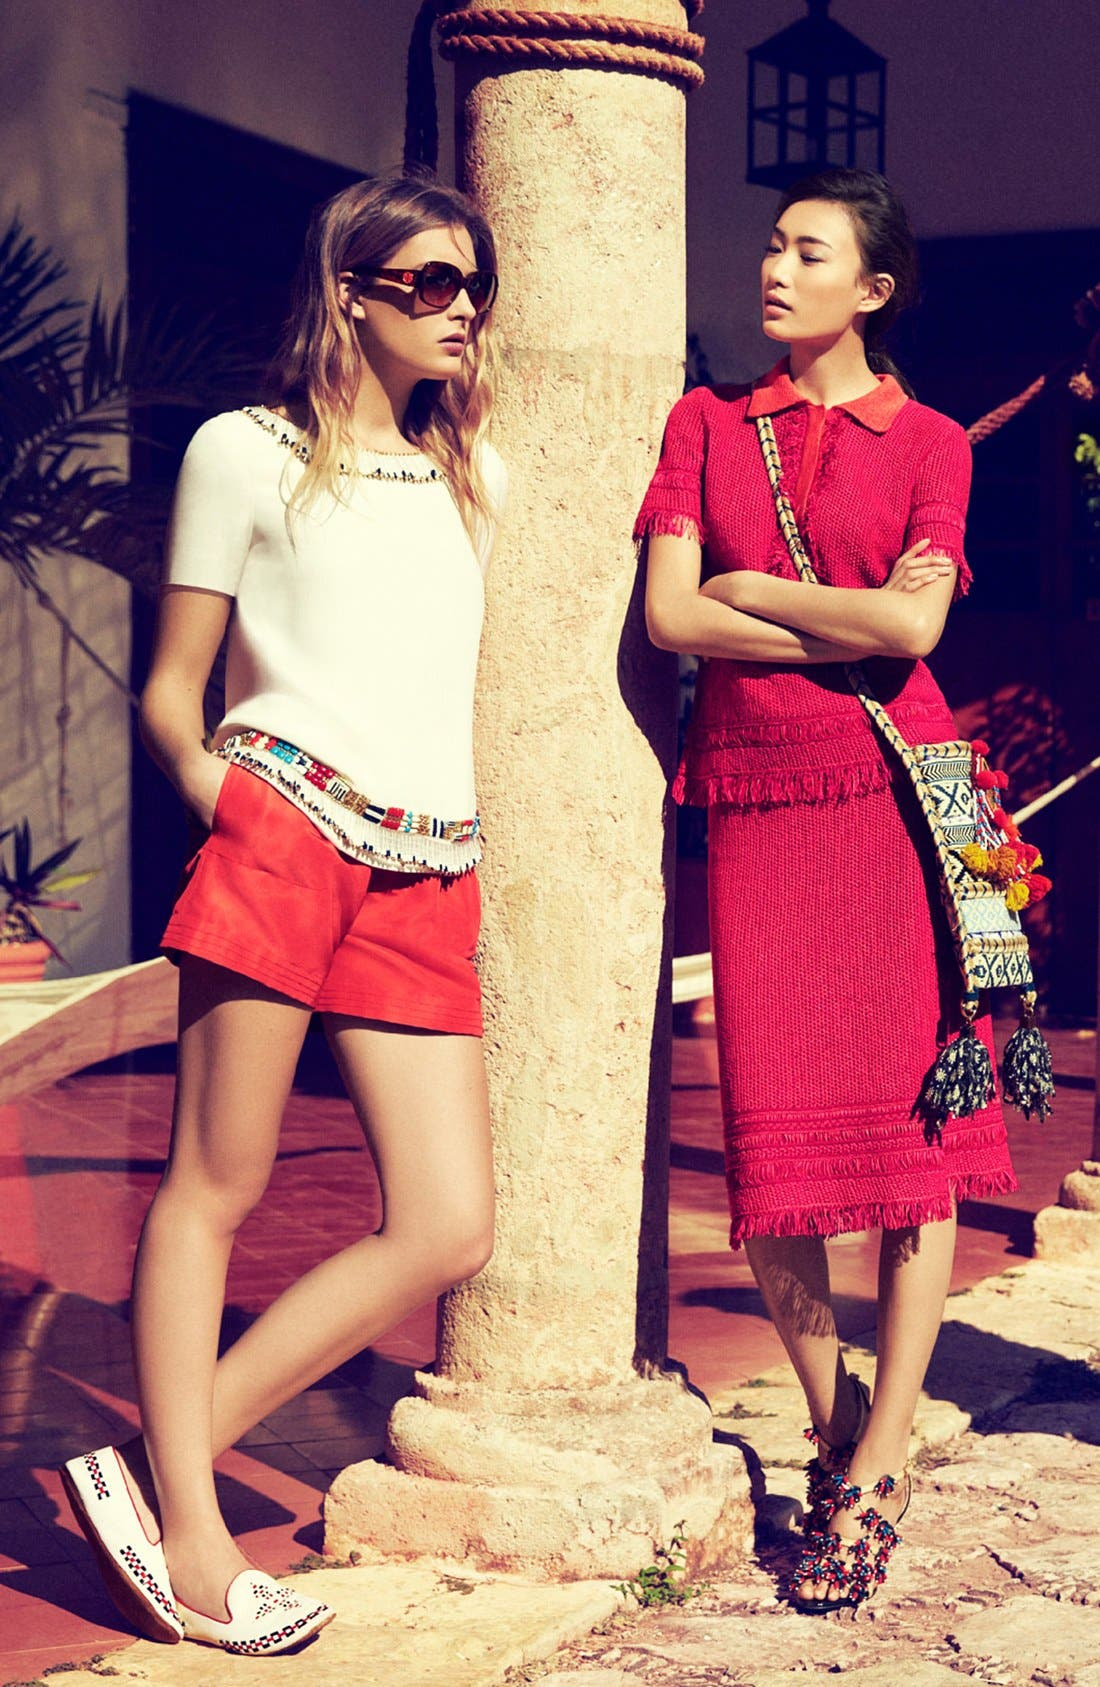 Main Image - Tory Burch Shorts Outfit & Skirt Outfit